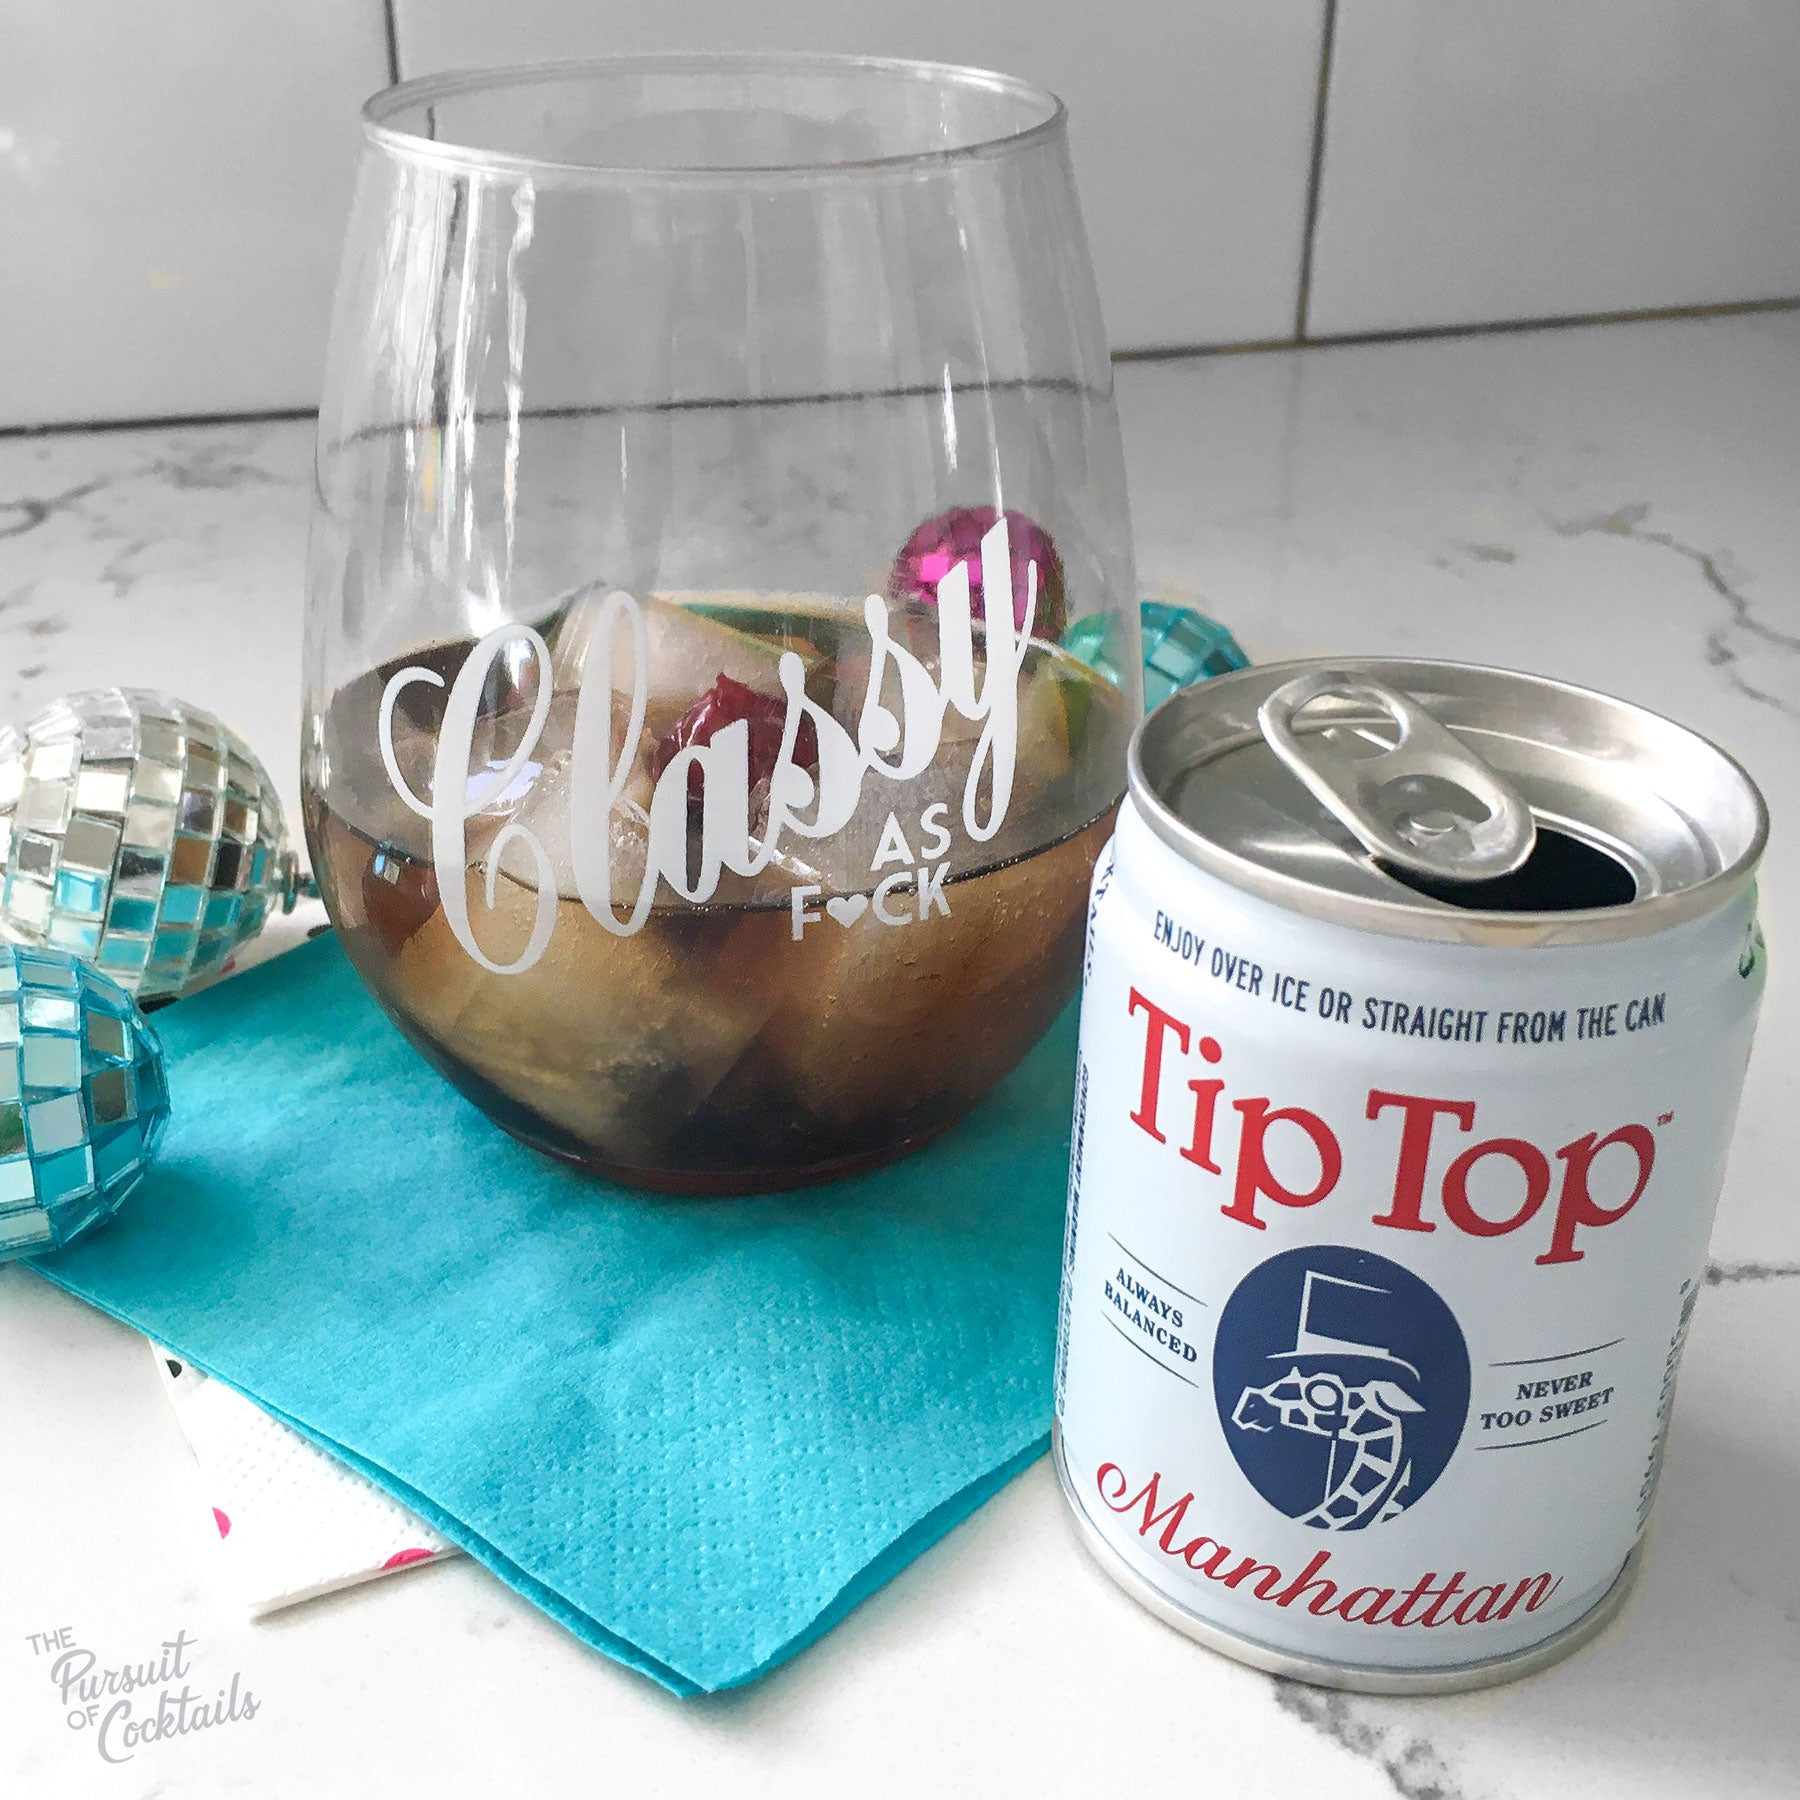 Canned cocktail review of Tip Top's Manhattan